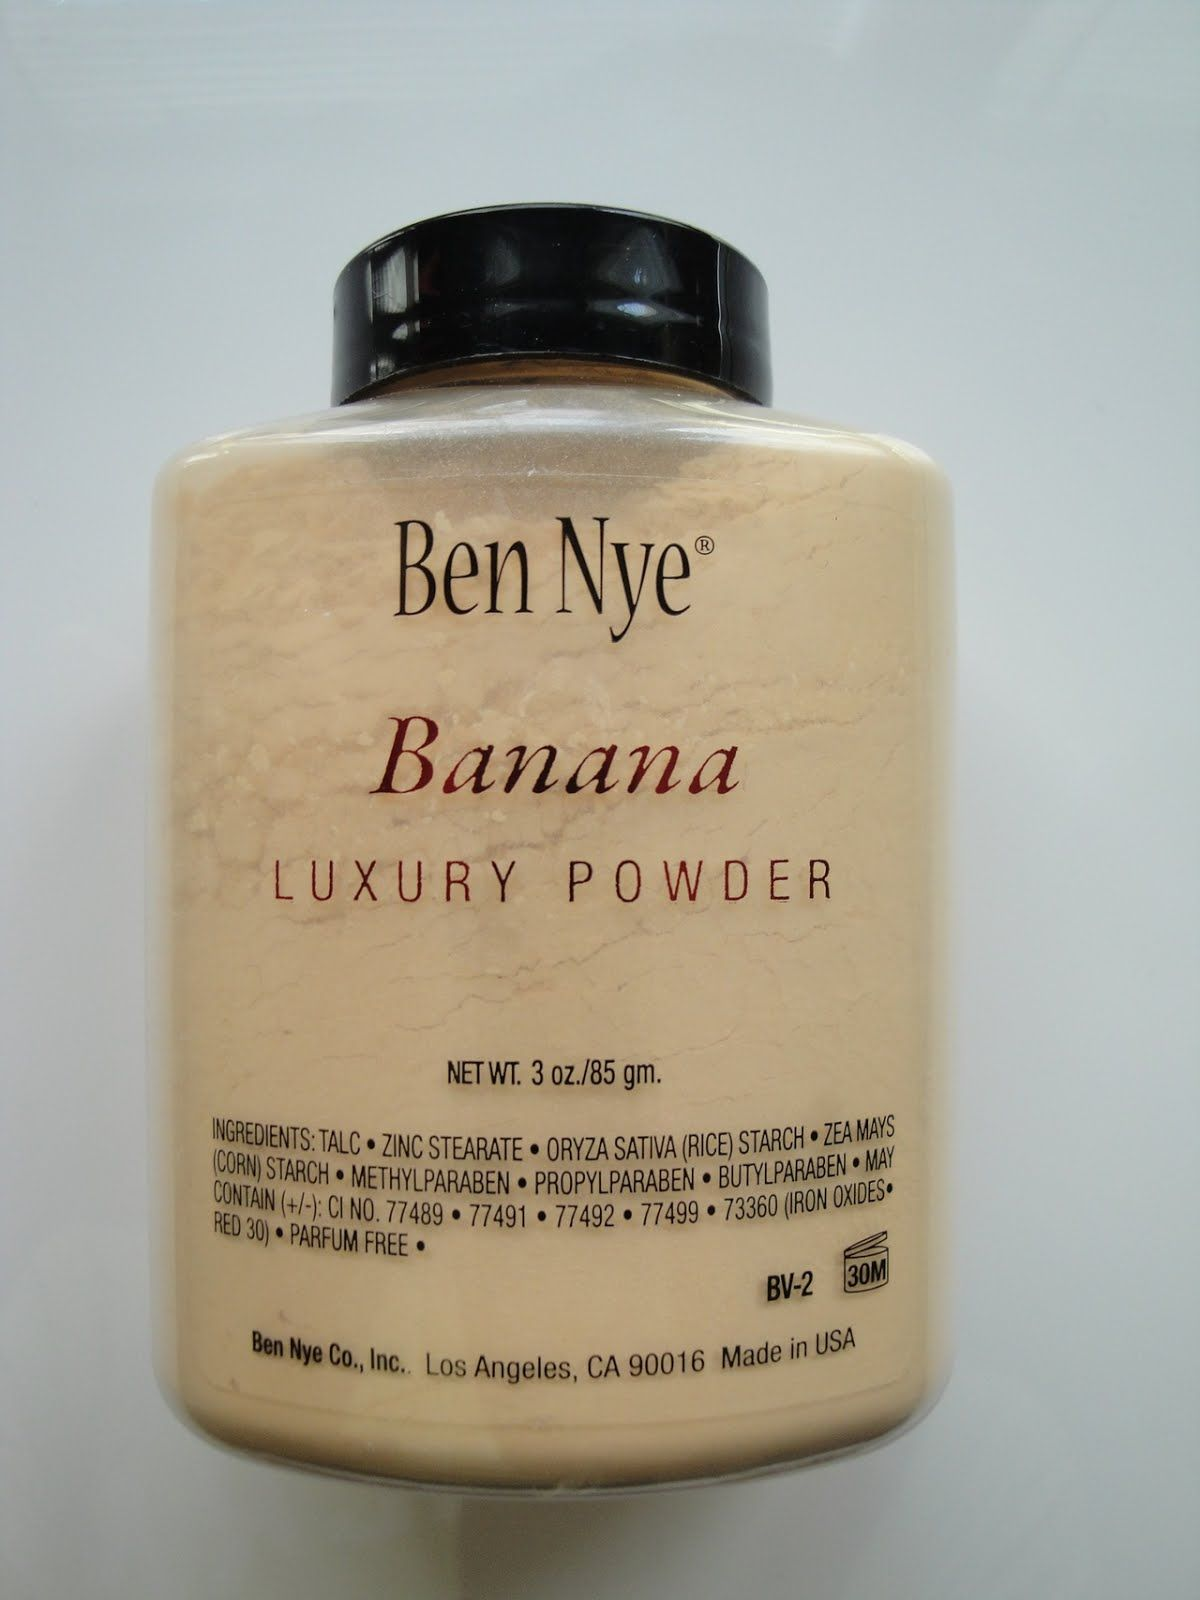 ben nye banana powder! Just bought some and can not wait